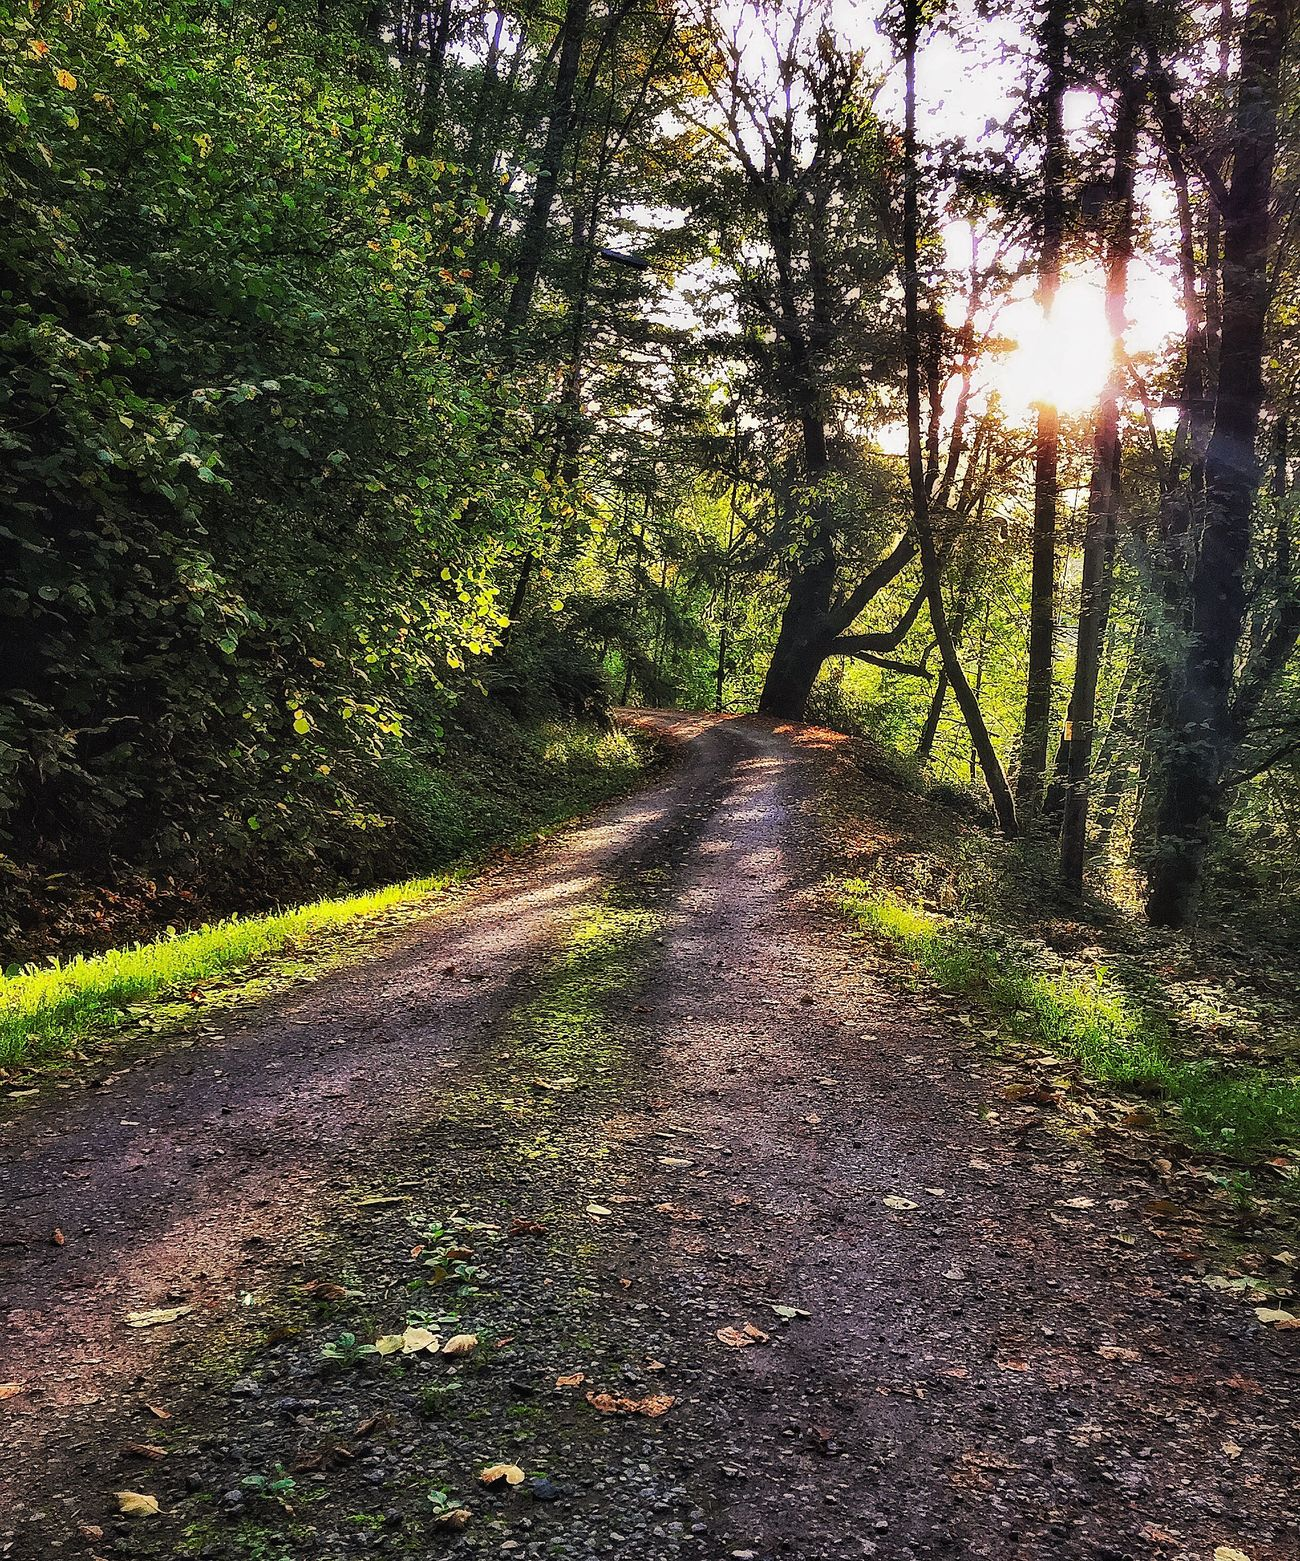 A color one Sunlight Tranquil Scene Sunbeam Dirt Road Road Sunny Day On The Way To Work Good Morning Beautyeverywhere Bright Simplicity Light And Shadow